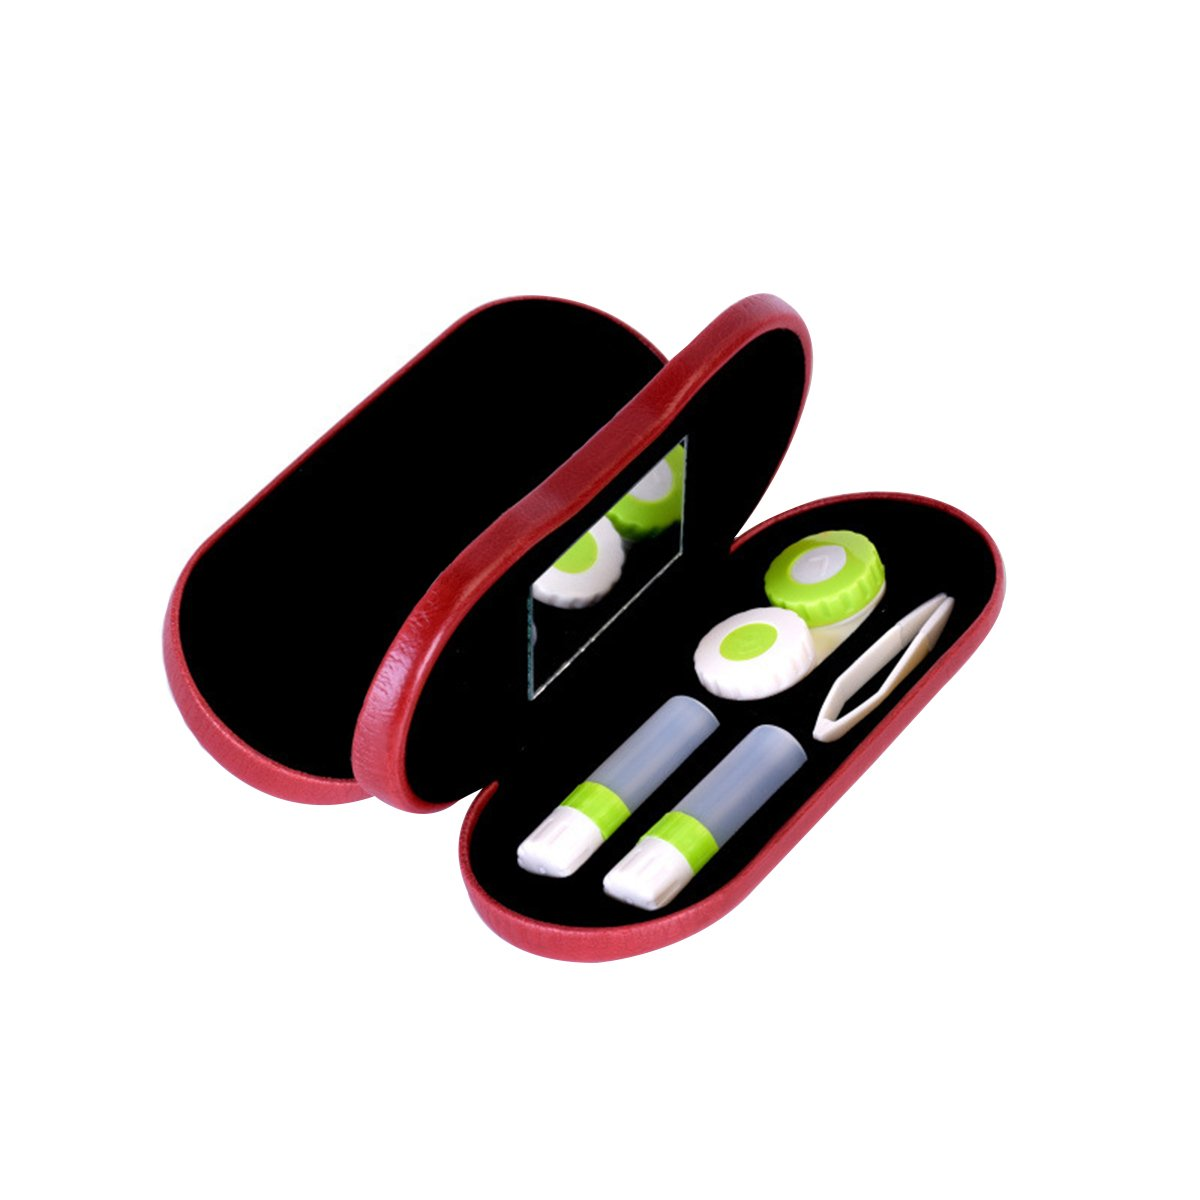 ROSENICE Portable 2-in-1 Eyeglass and Contact Lens Hard Case for Home Travel Kit (Red)